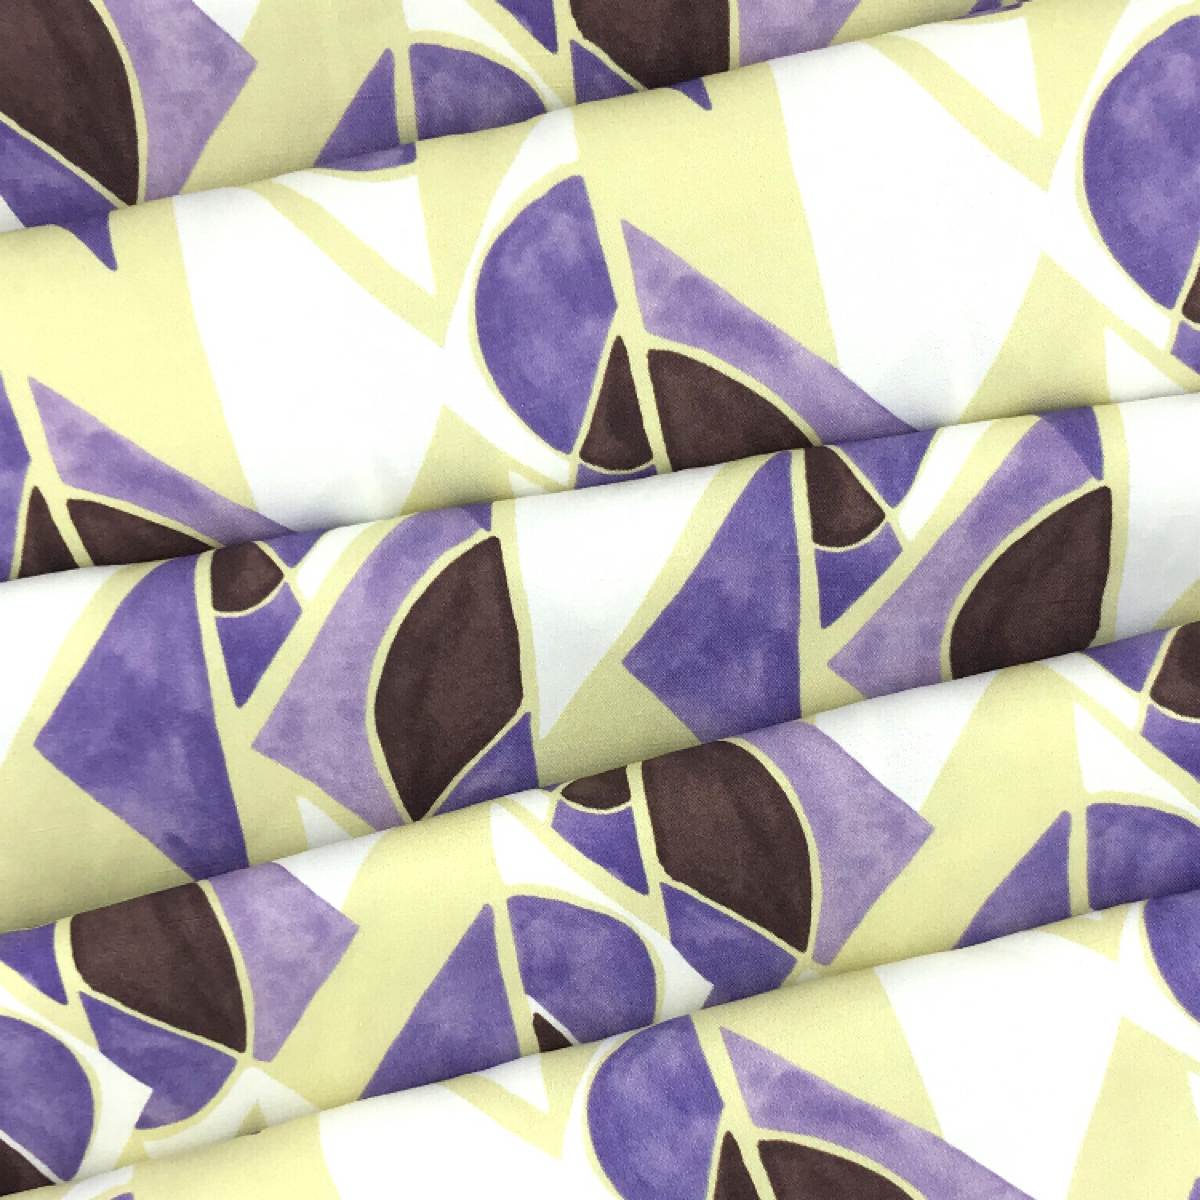 Abstract Green, Purple, and White Printed Woven Textile by Industry by Clerici Tessuto